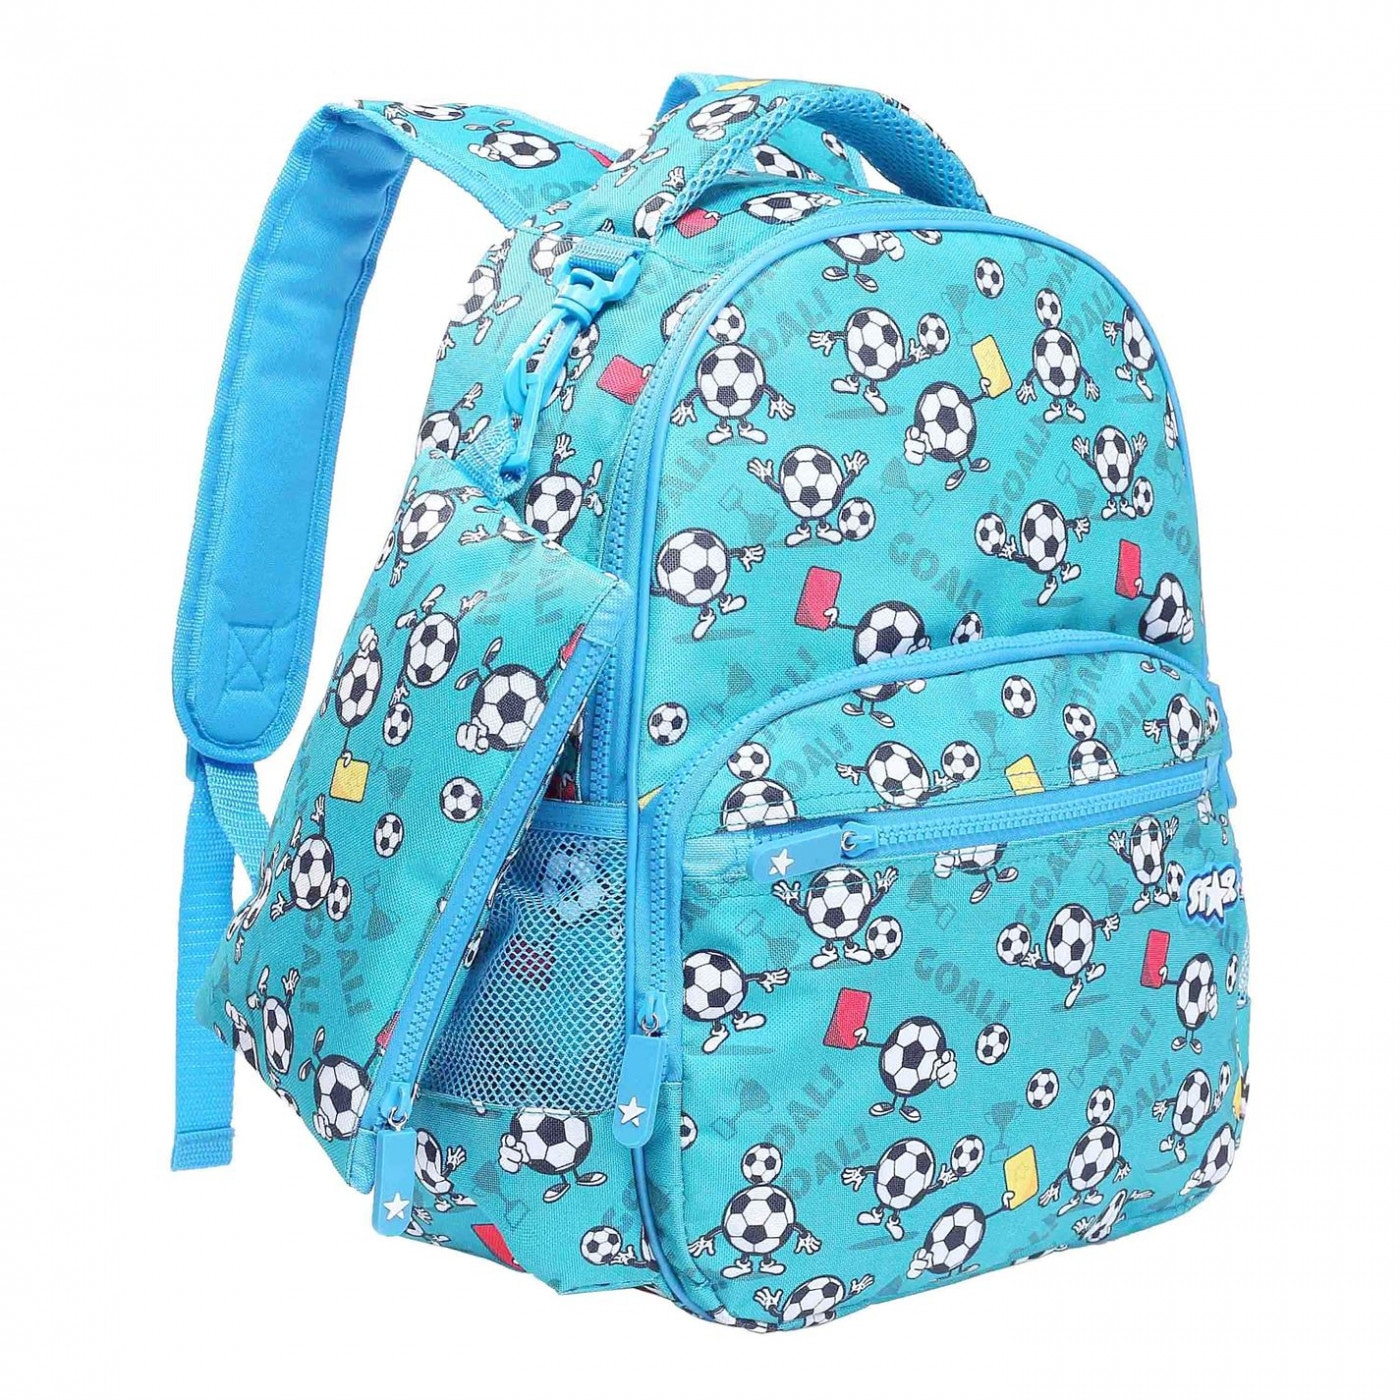 Star Backpack and Pencil Case Set